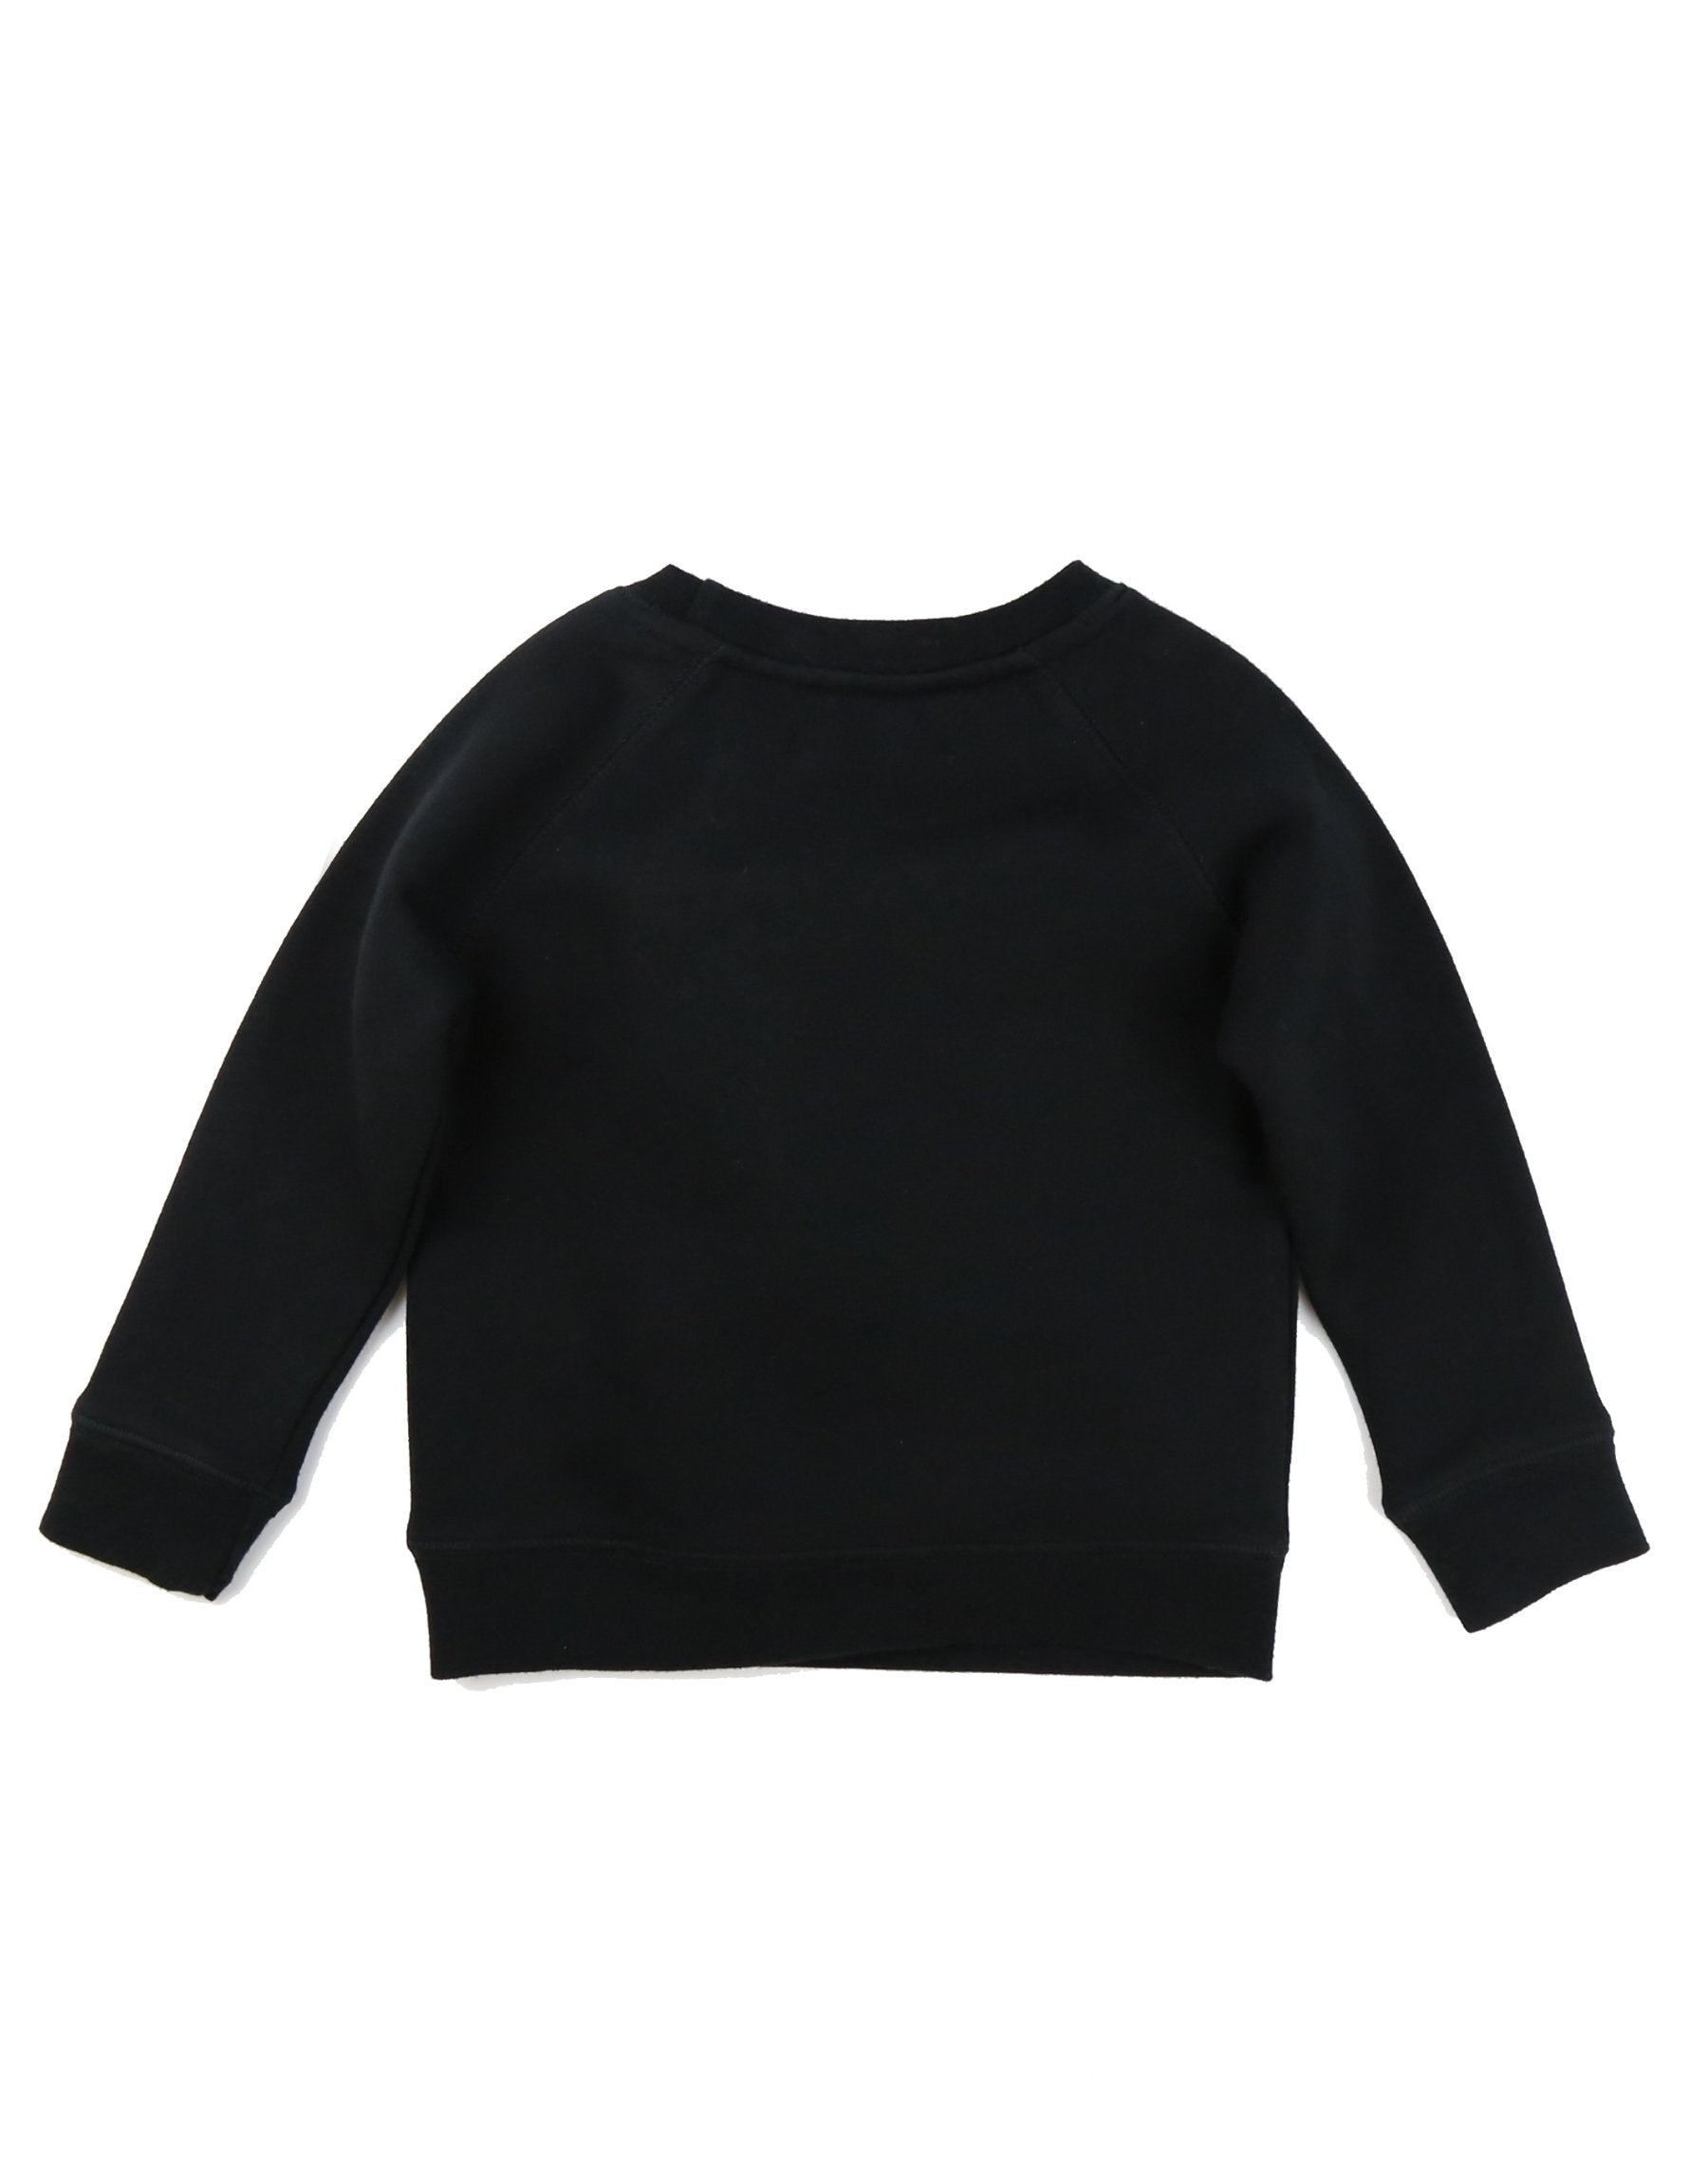 Photo of the back of the Boss Babe Little Babes classic crew neck sweatshirt in black by Brunette the Label.